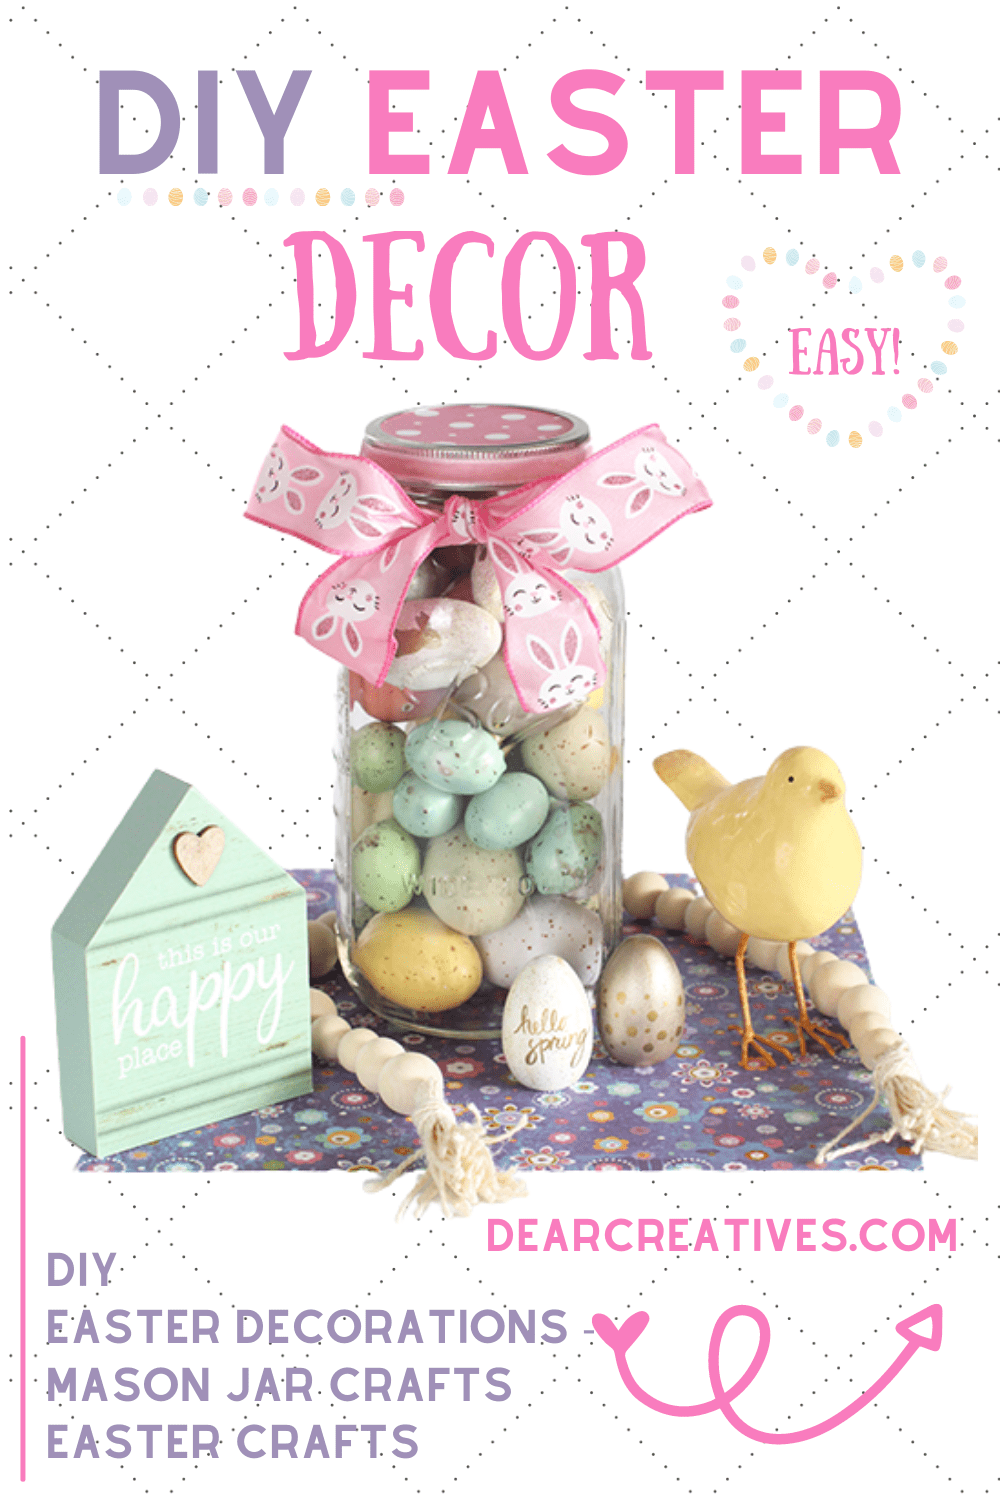 DIY Easter Decor – Mason Jar Craft